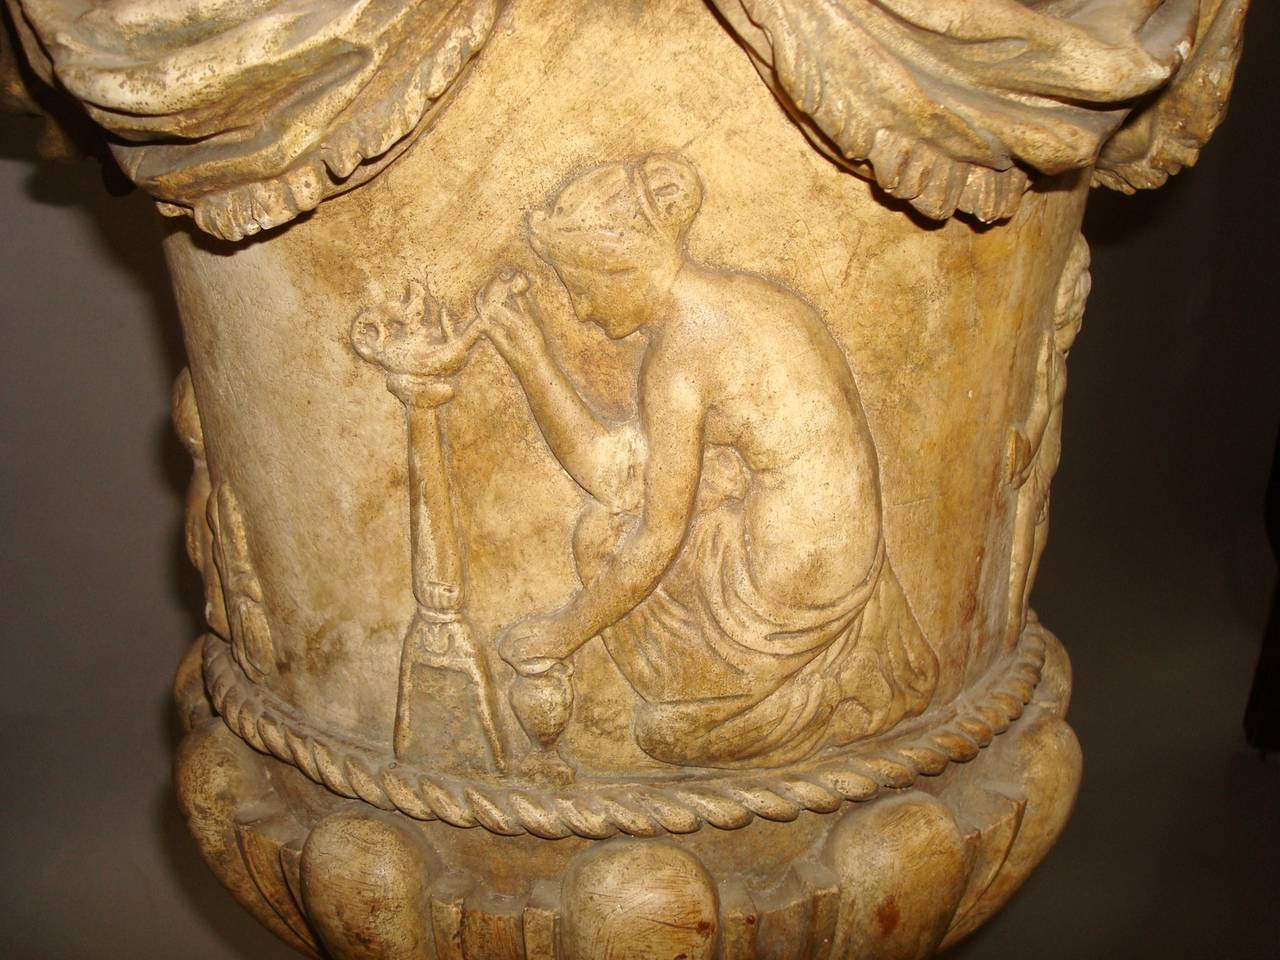 Regency Pair of Neoclassical Plaster Urns In Good Condition For Sale In Moreton-in-Marsh, Gloucestershire